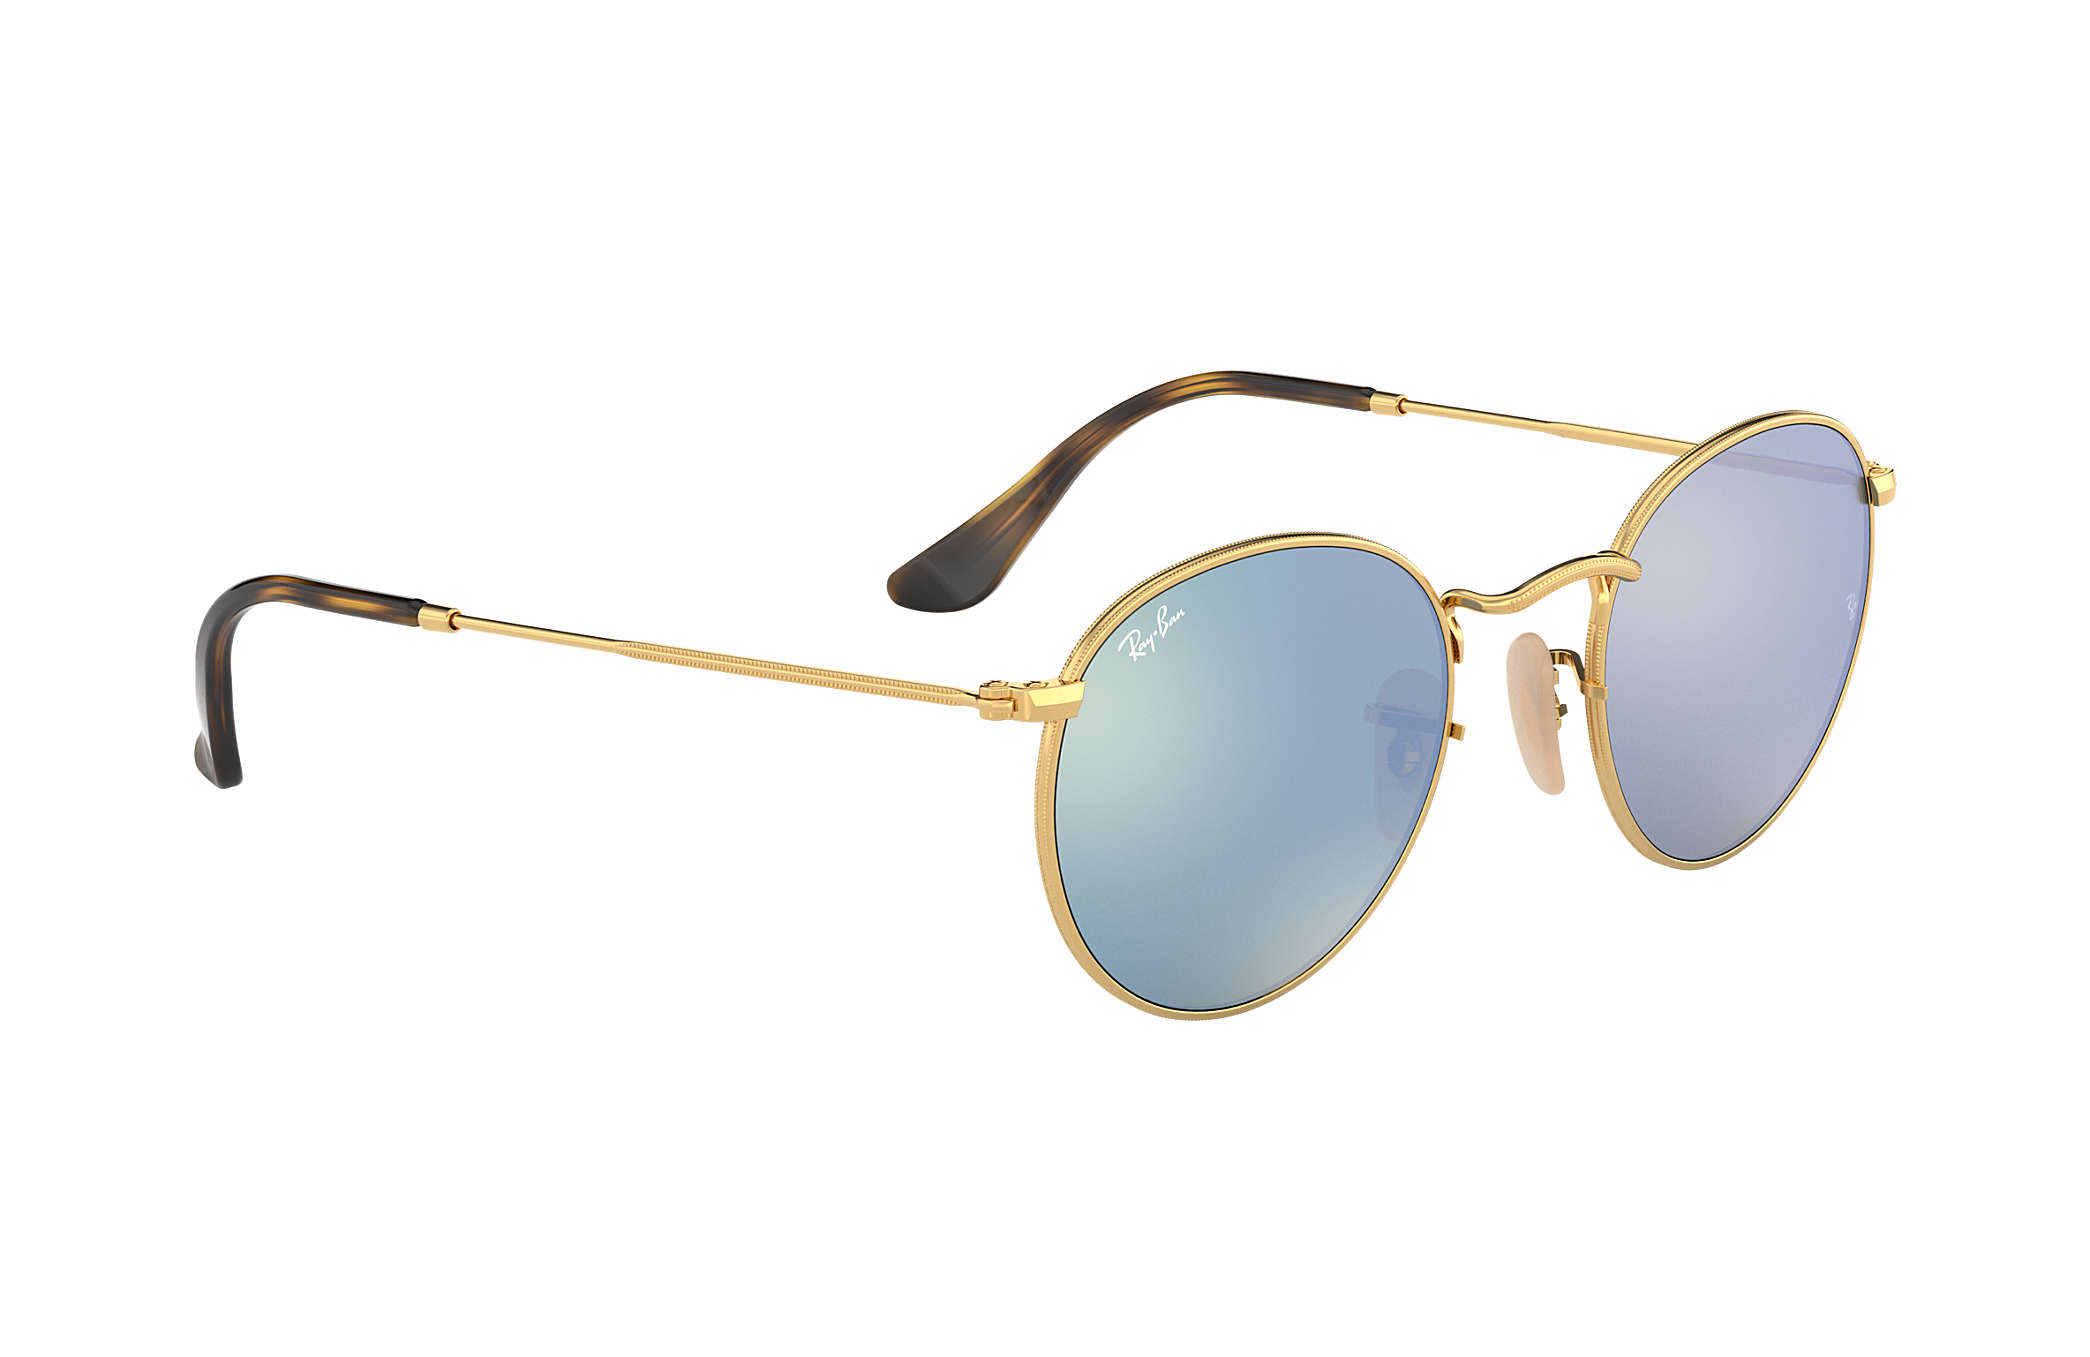 4c2a3b2f3 Ray-Ban Round Flat Lenses RB3447N Gold - Metal - Silver Lenses ...